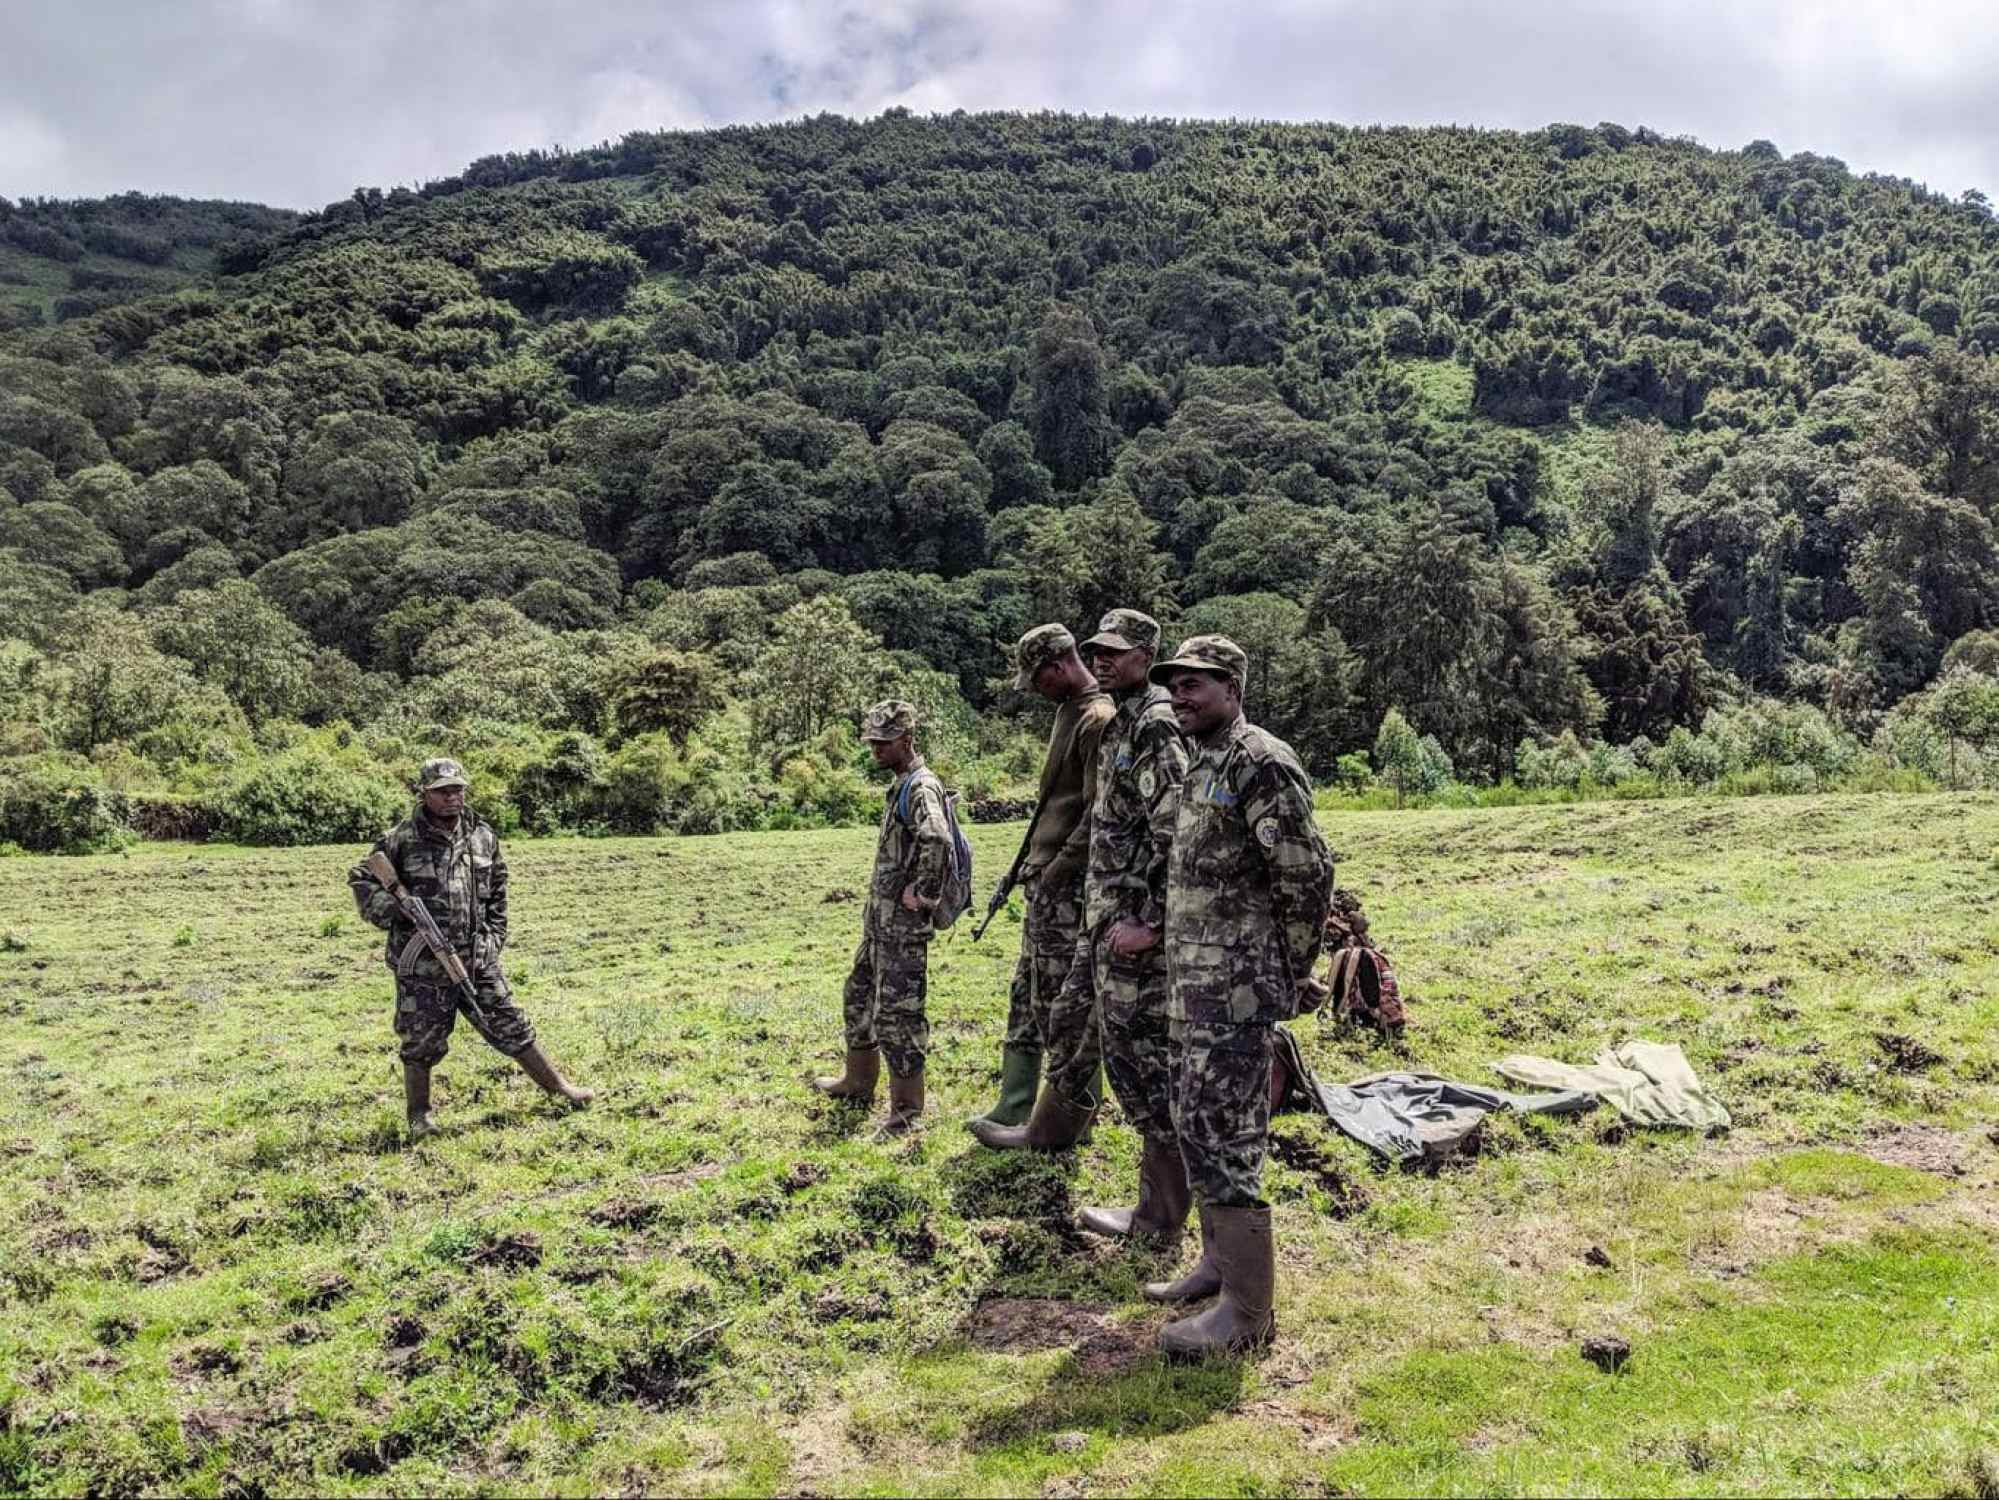 Park rangers and trackers ready to protect mountain gorillas